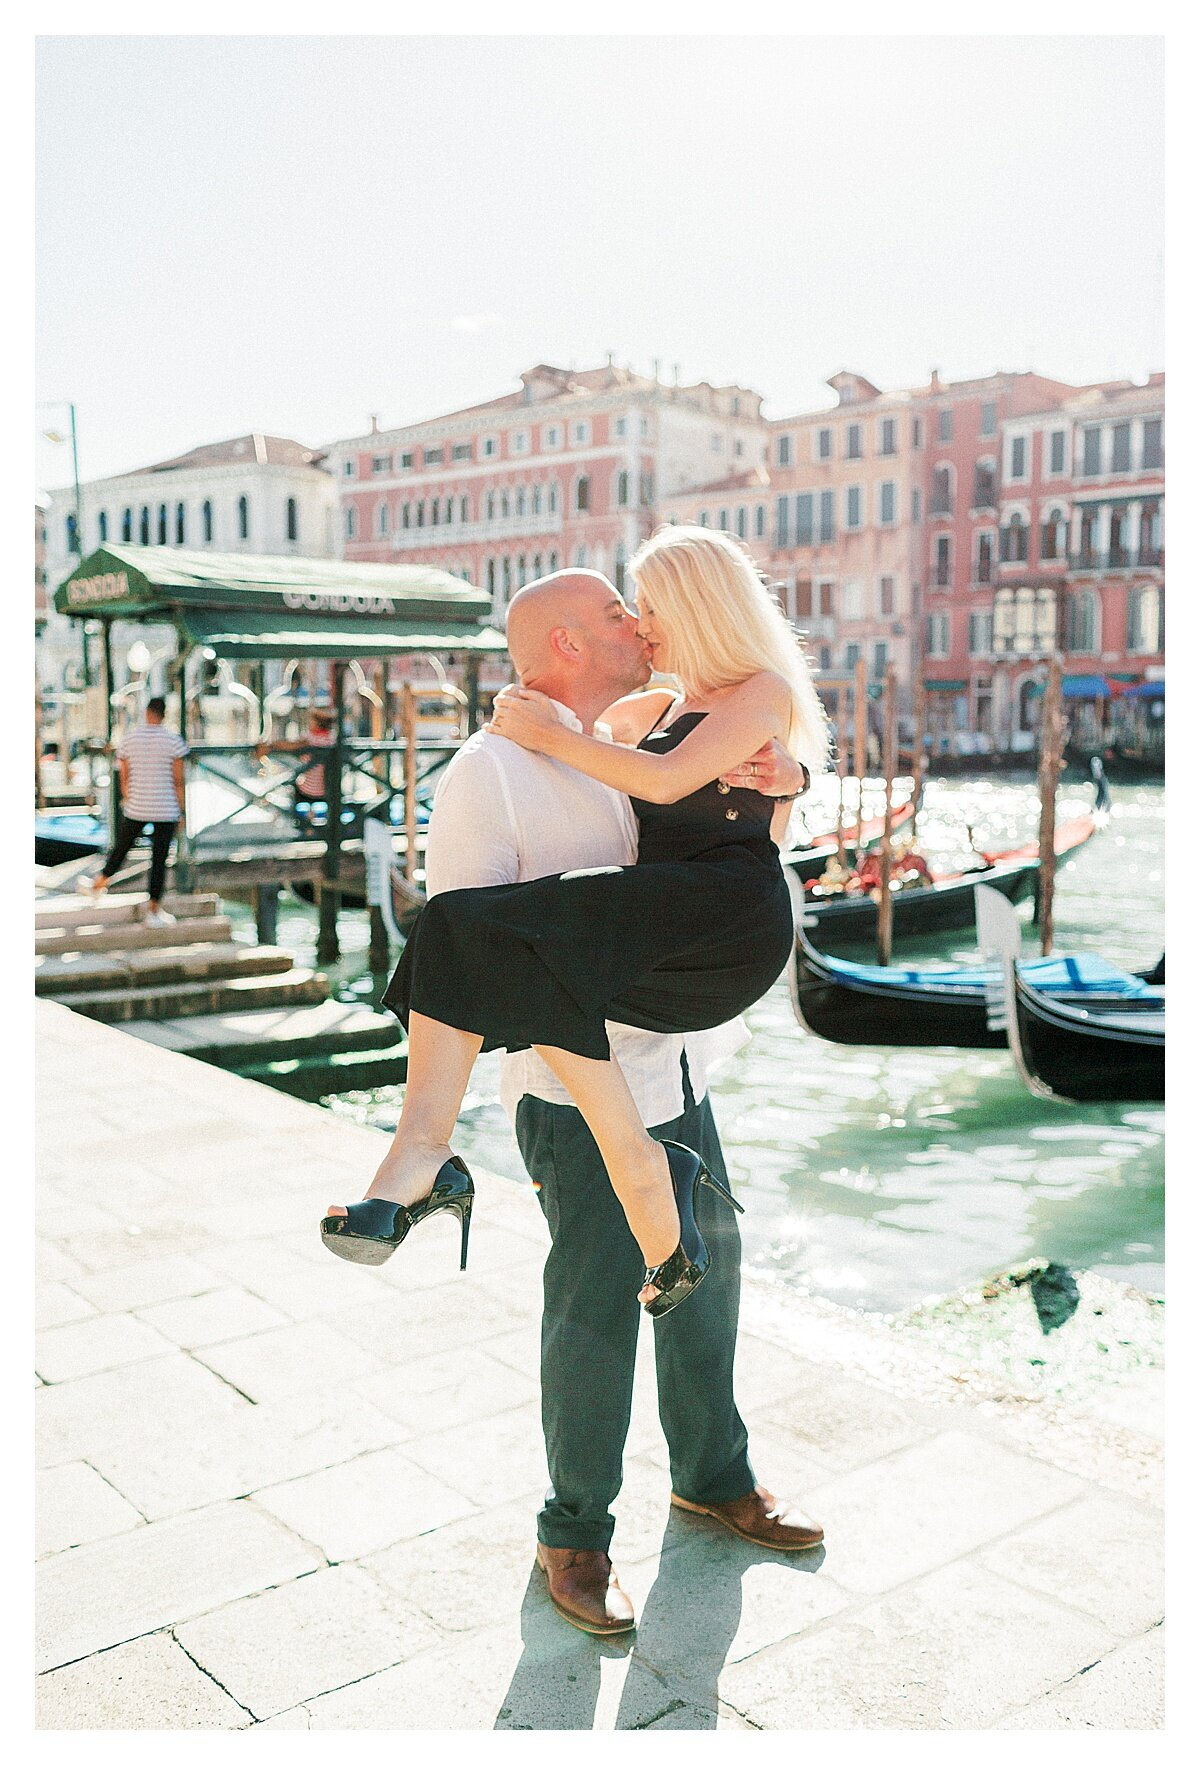 VENICE-COUPLE-PHOTOSHOOT-film-fuji-400h-stefano-degirmenci_0779.jpg